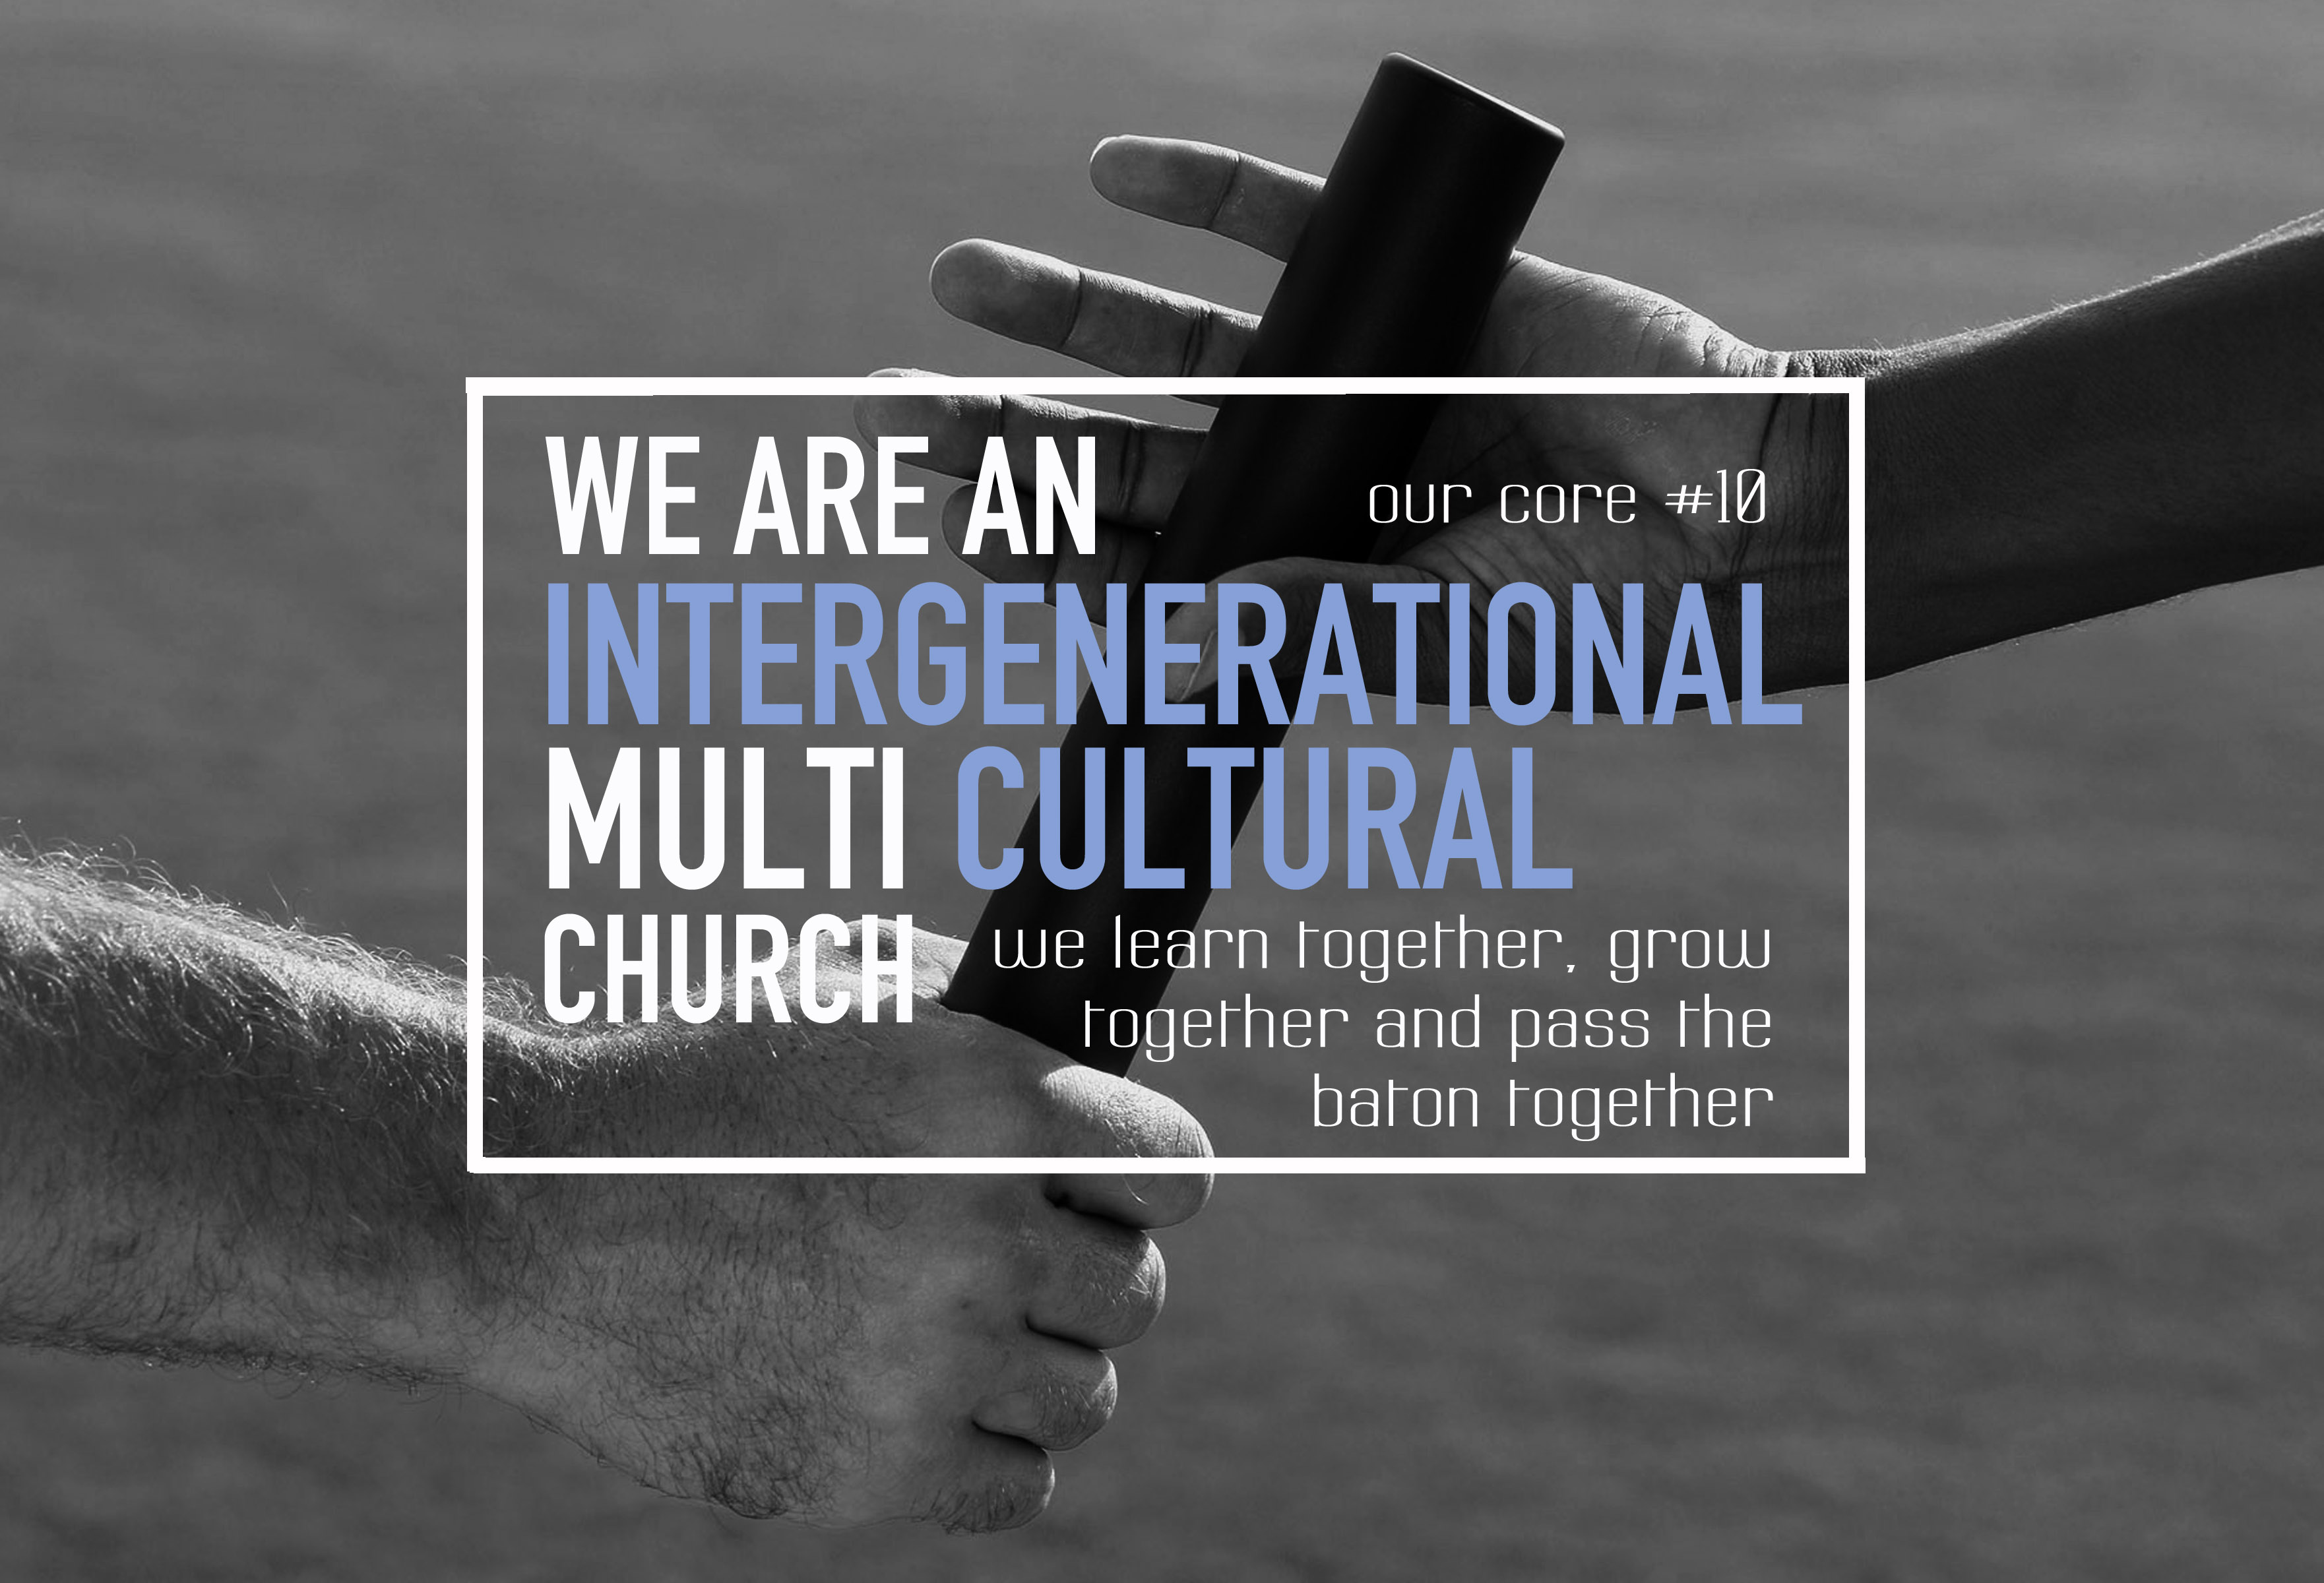 We are an intergenerational, multicultural church. Our Core 10